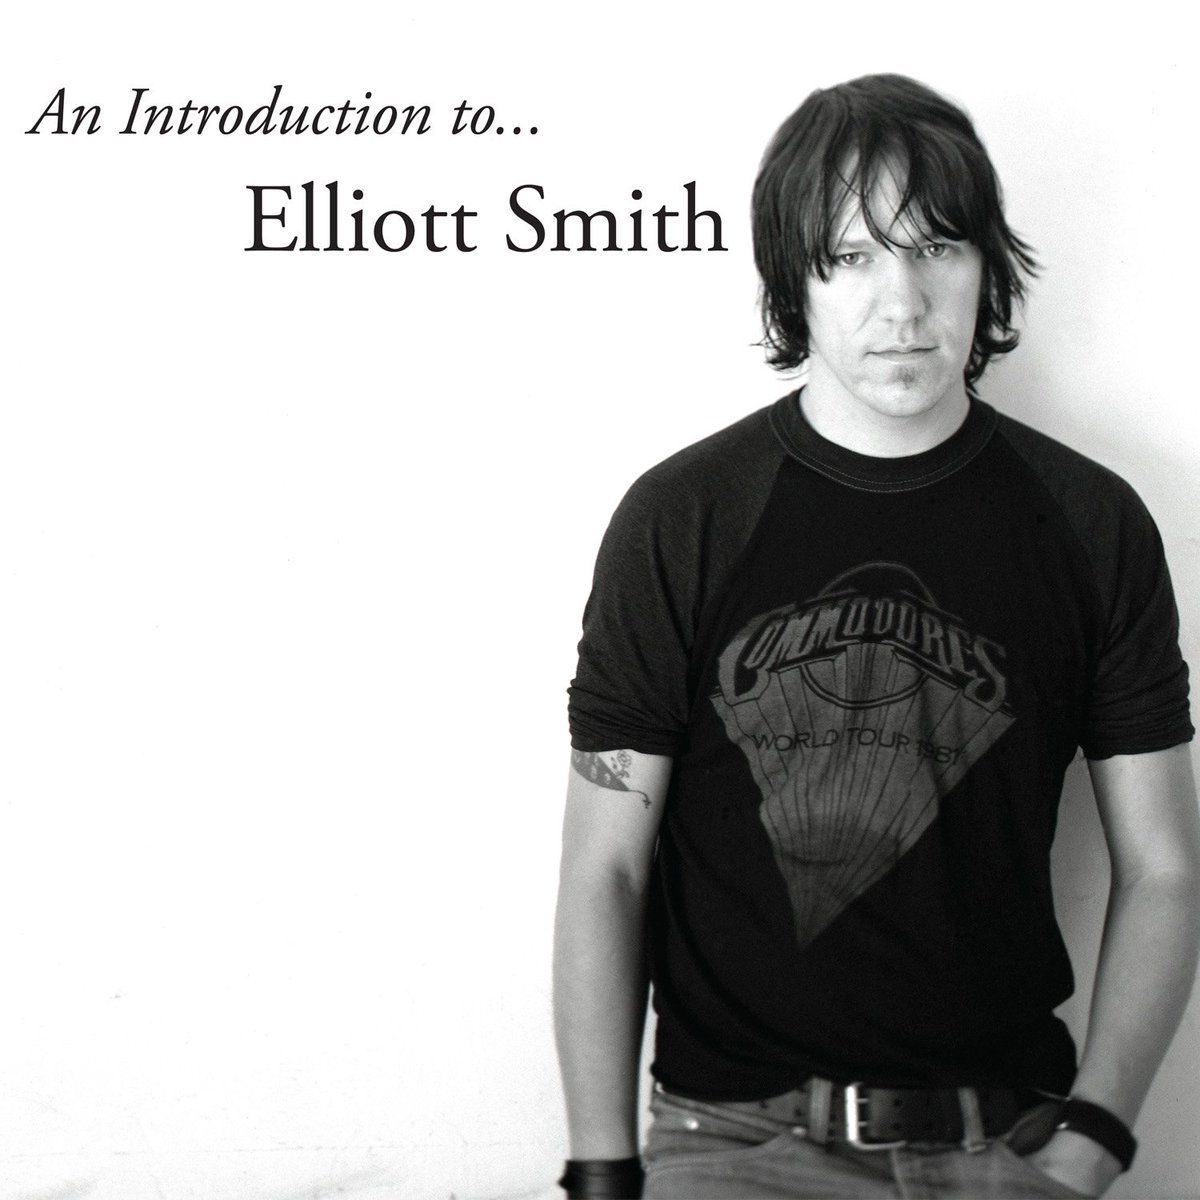 Elliott Smith - An Introduction to Elliott Smith  $11.69 - https://amzn.to/3j0LWEc (lowest price in 1 year, avg. price = $15.87)pic.twitter.com/WpIVlIbzrG